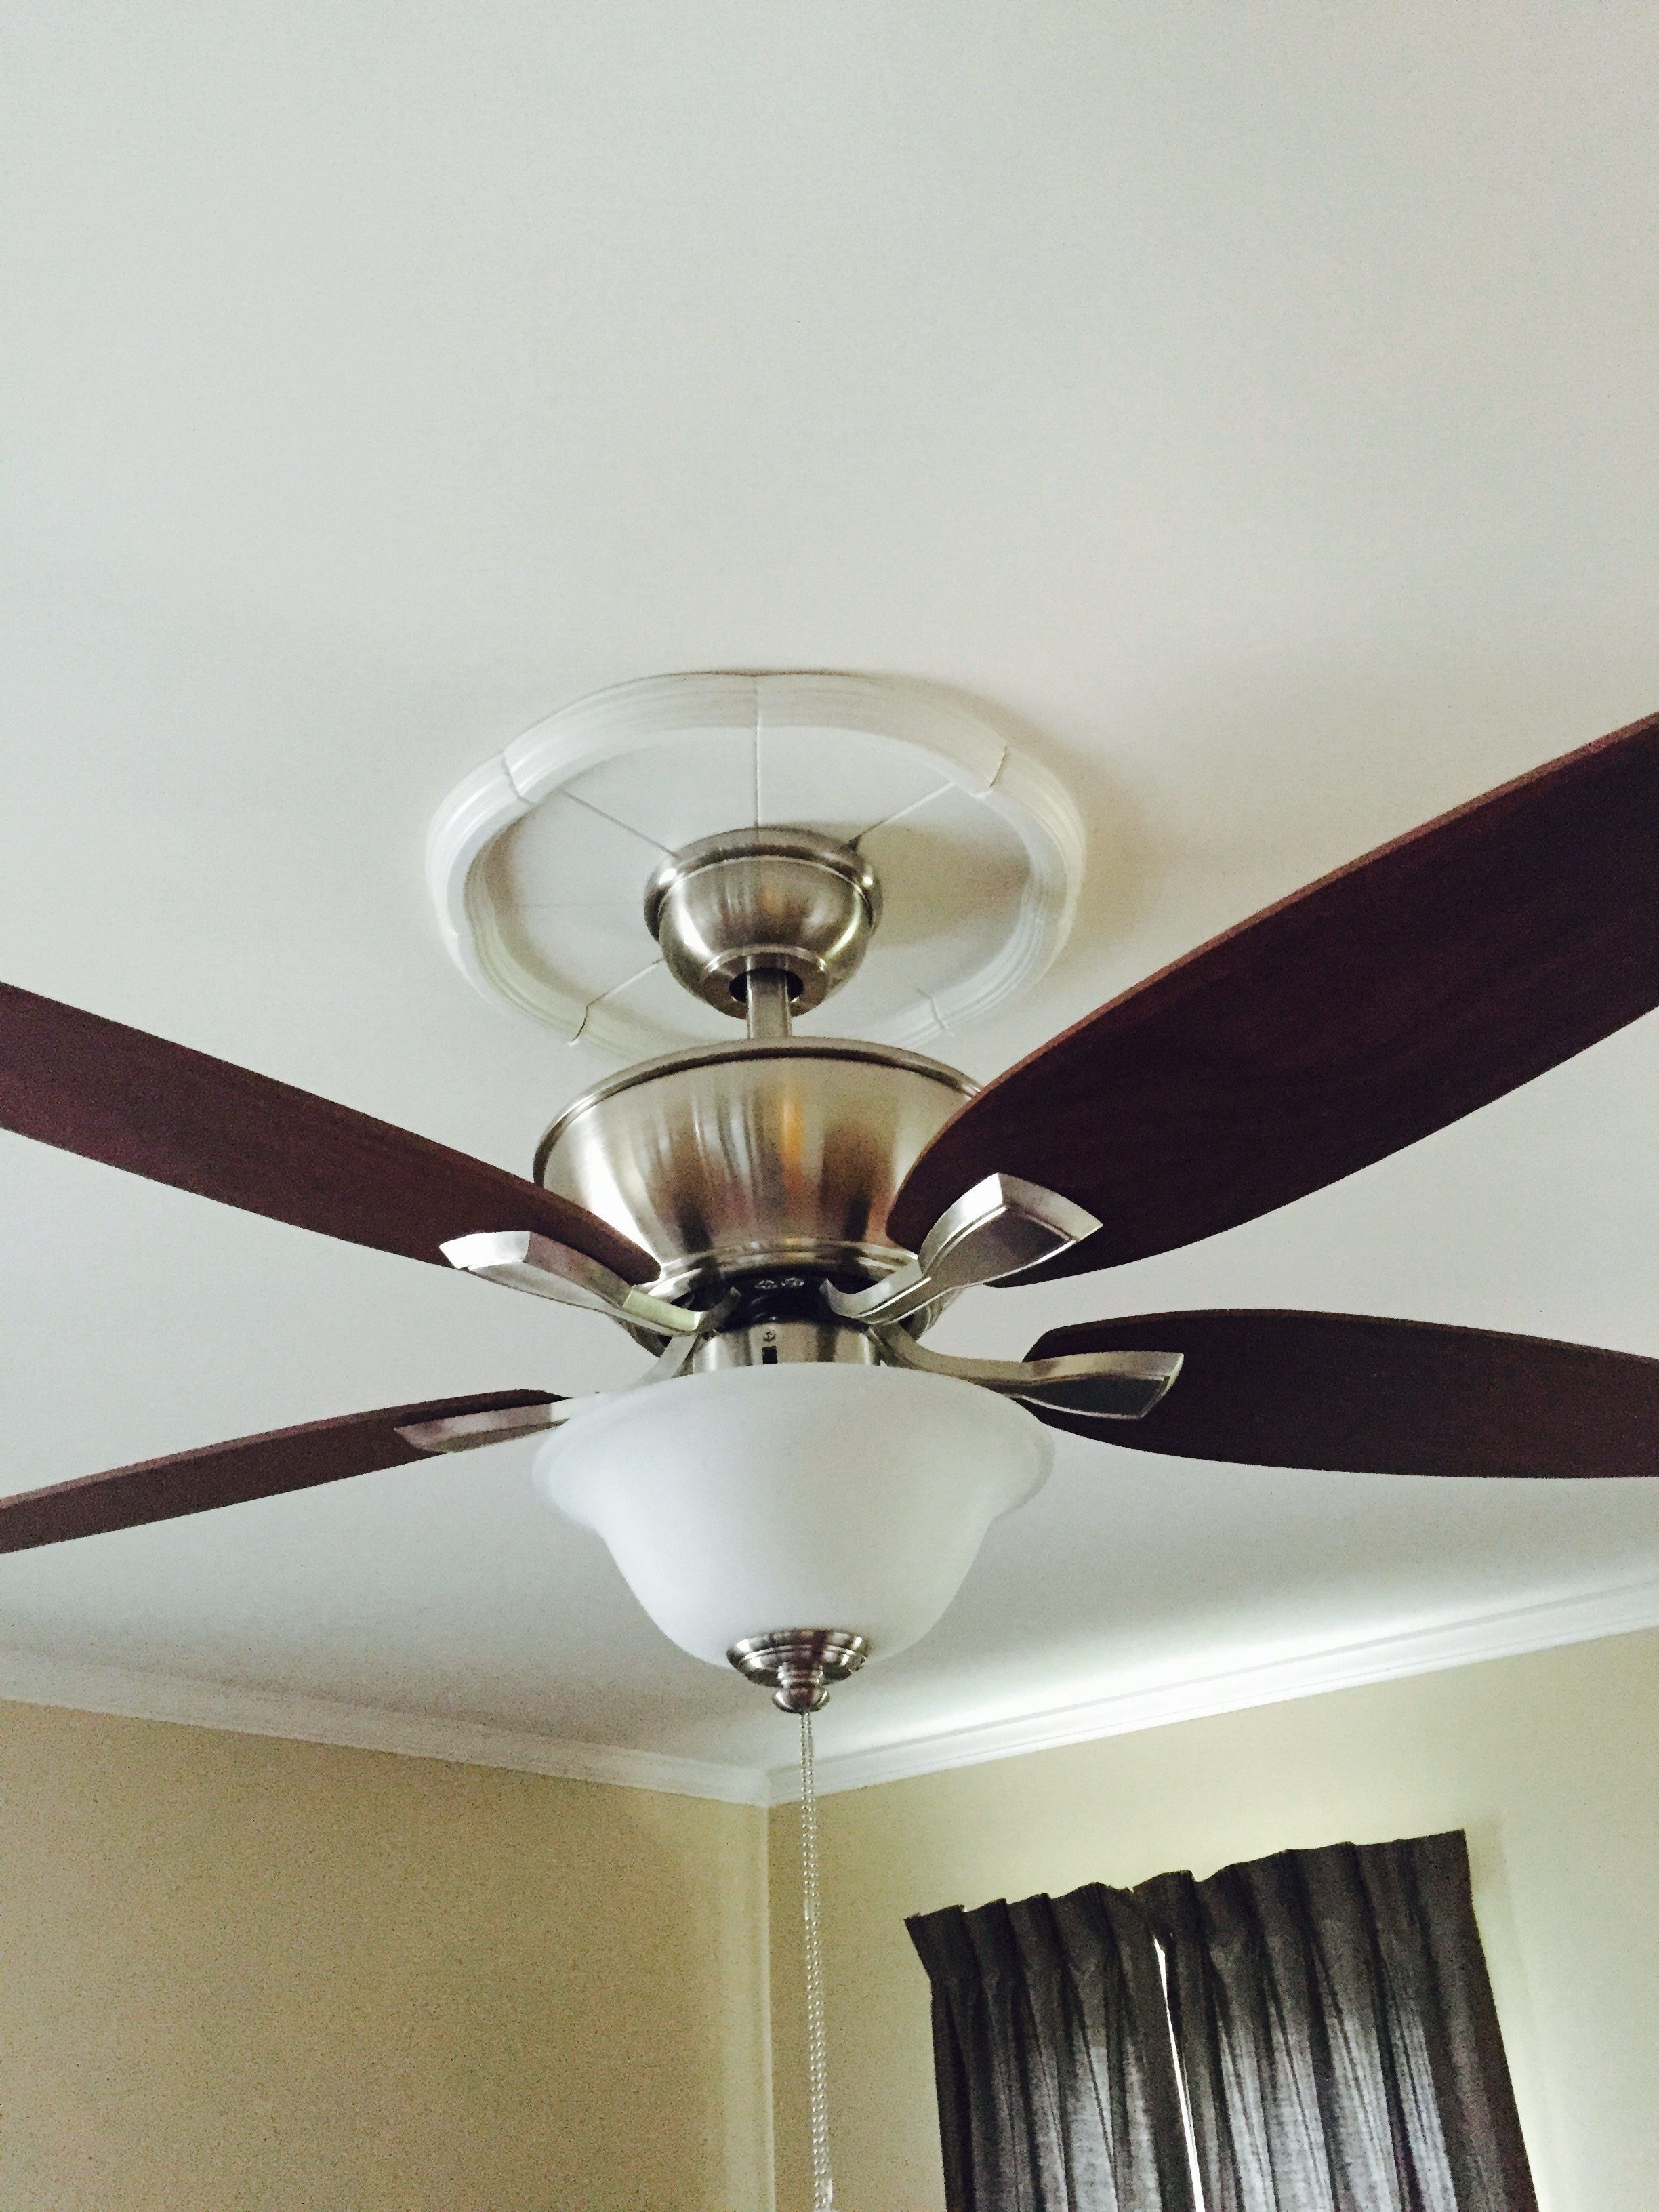 Fan Installation Electrician Services Philadelphia Pa How To Wire Ceiling